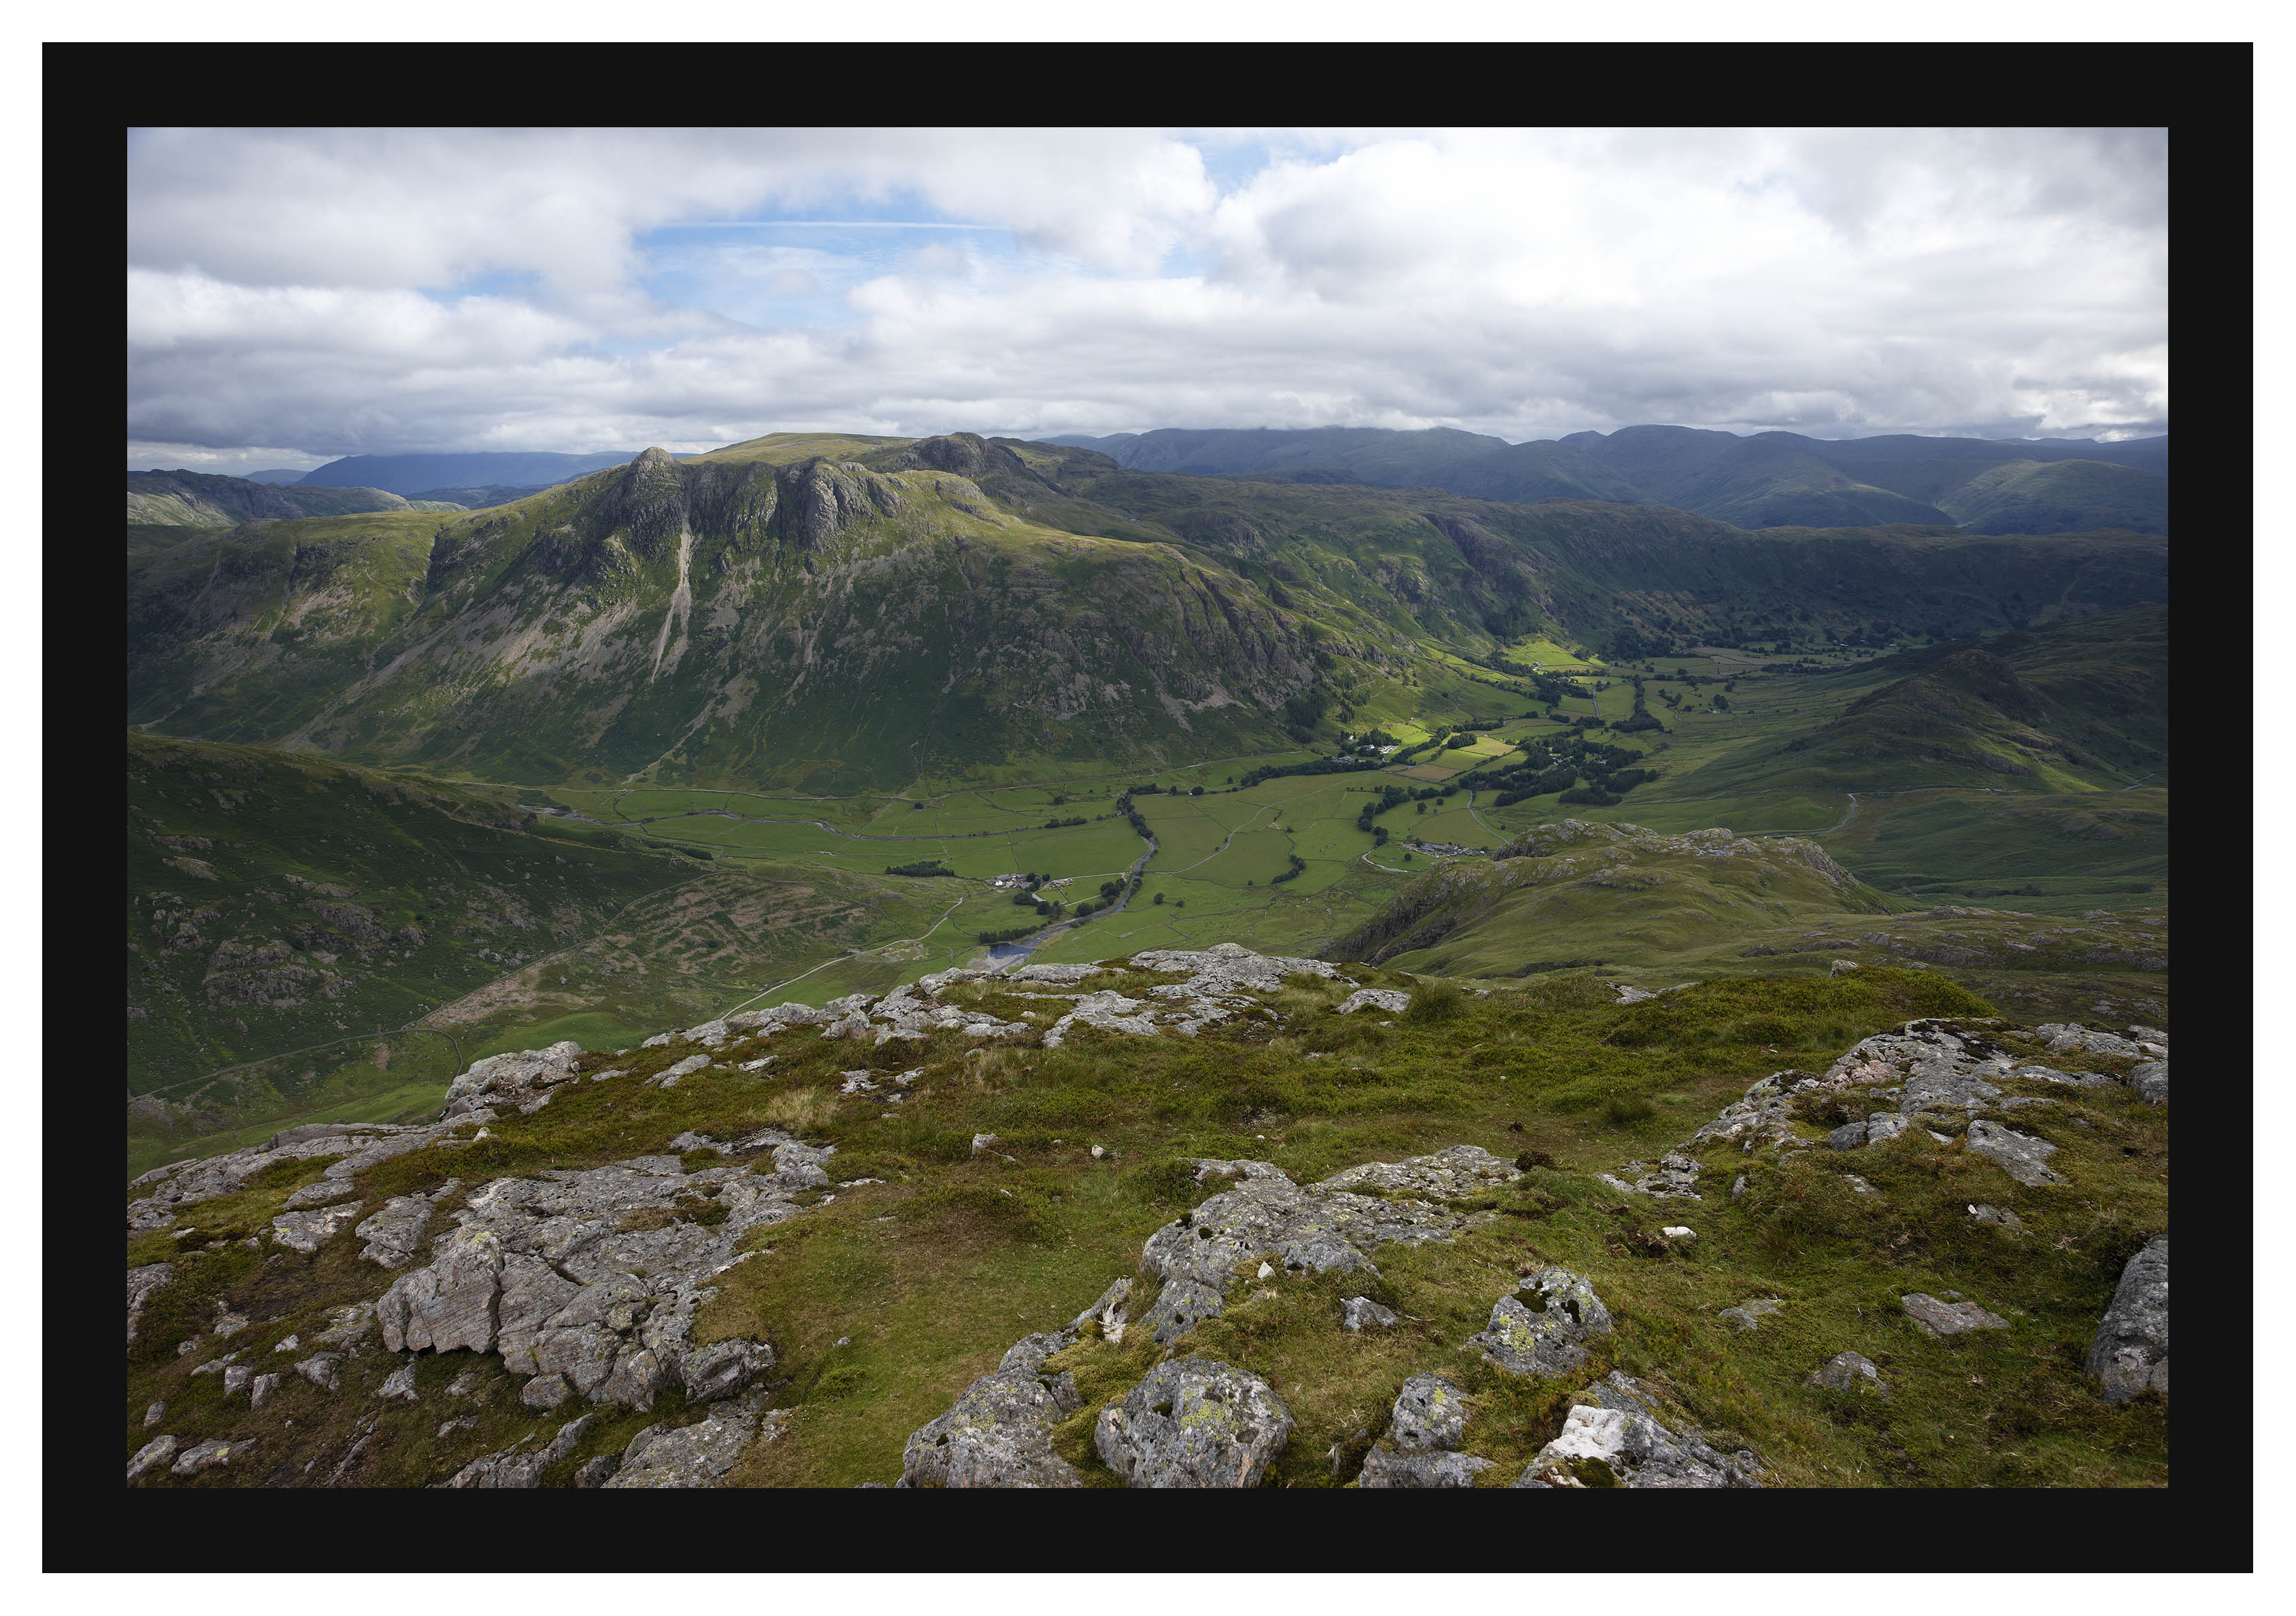 46E3980 The Langdale Pikes and Greater Langdale from Pike of Blisco